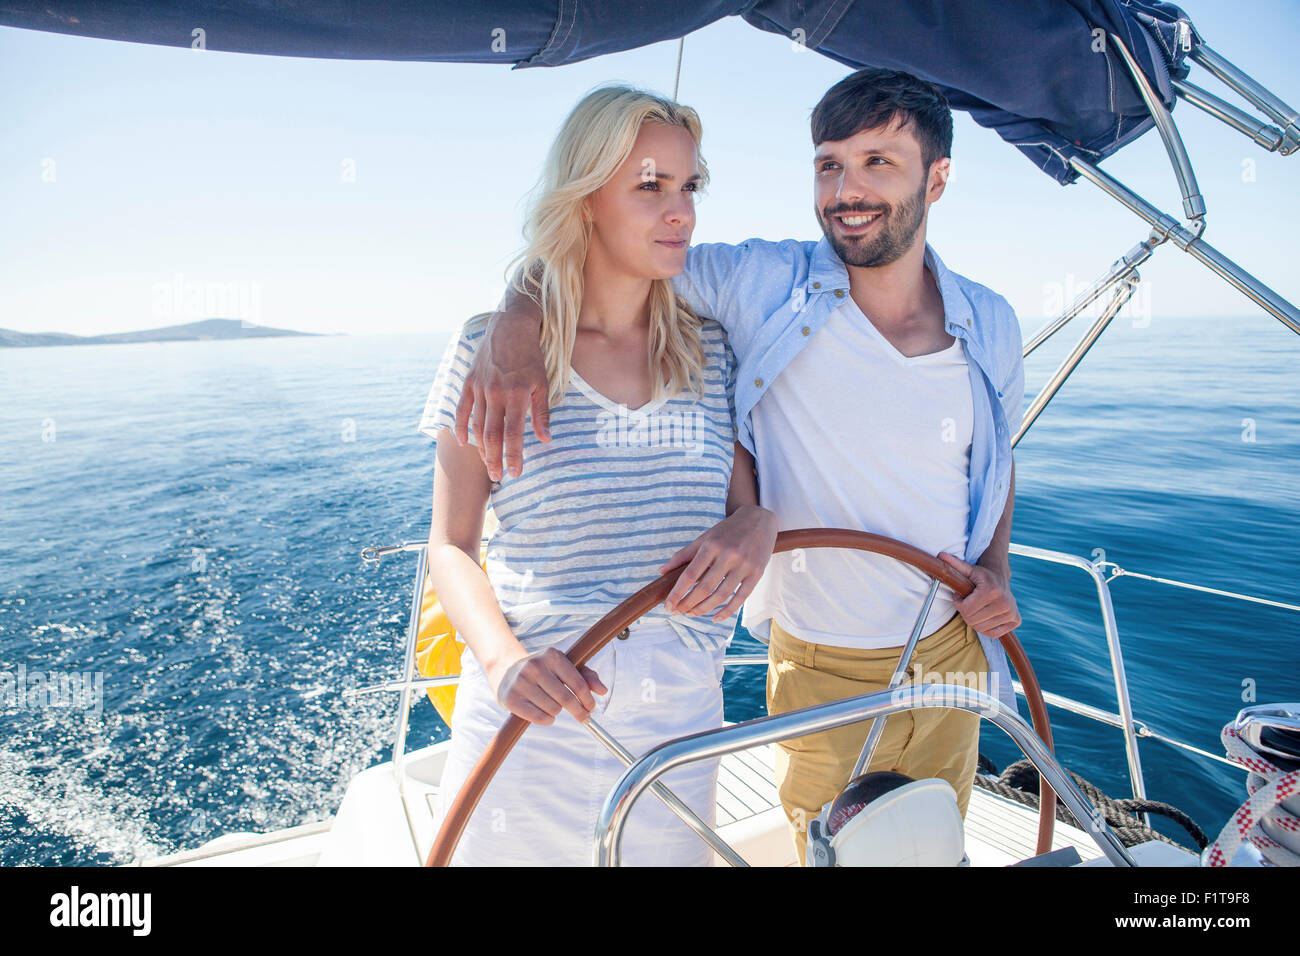 Young couple steering together on sailboat, Adriatic Sea - Stock Image